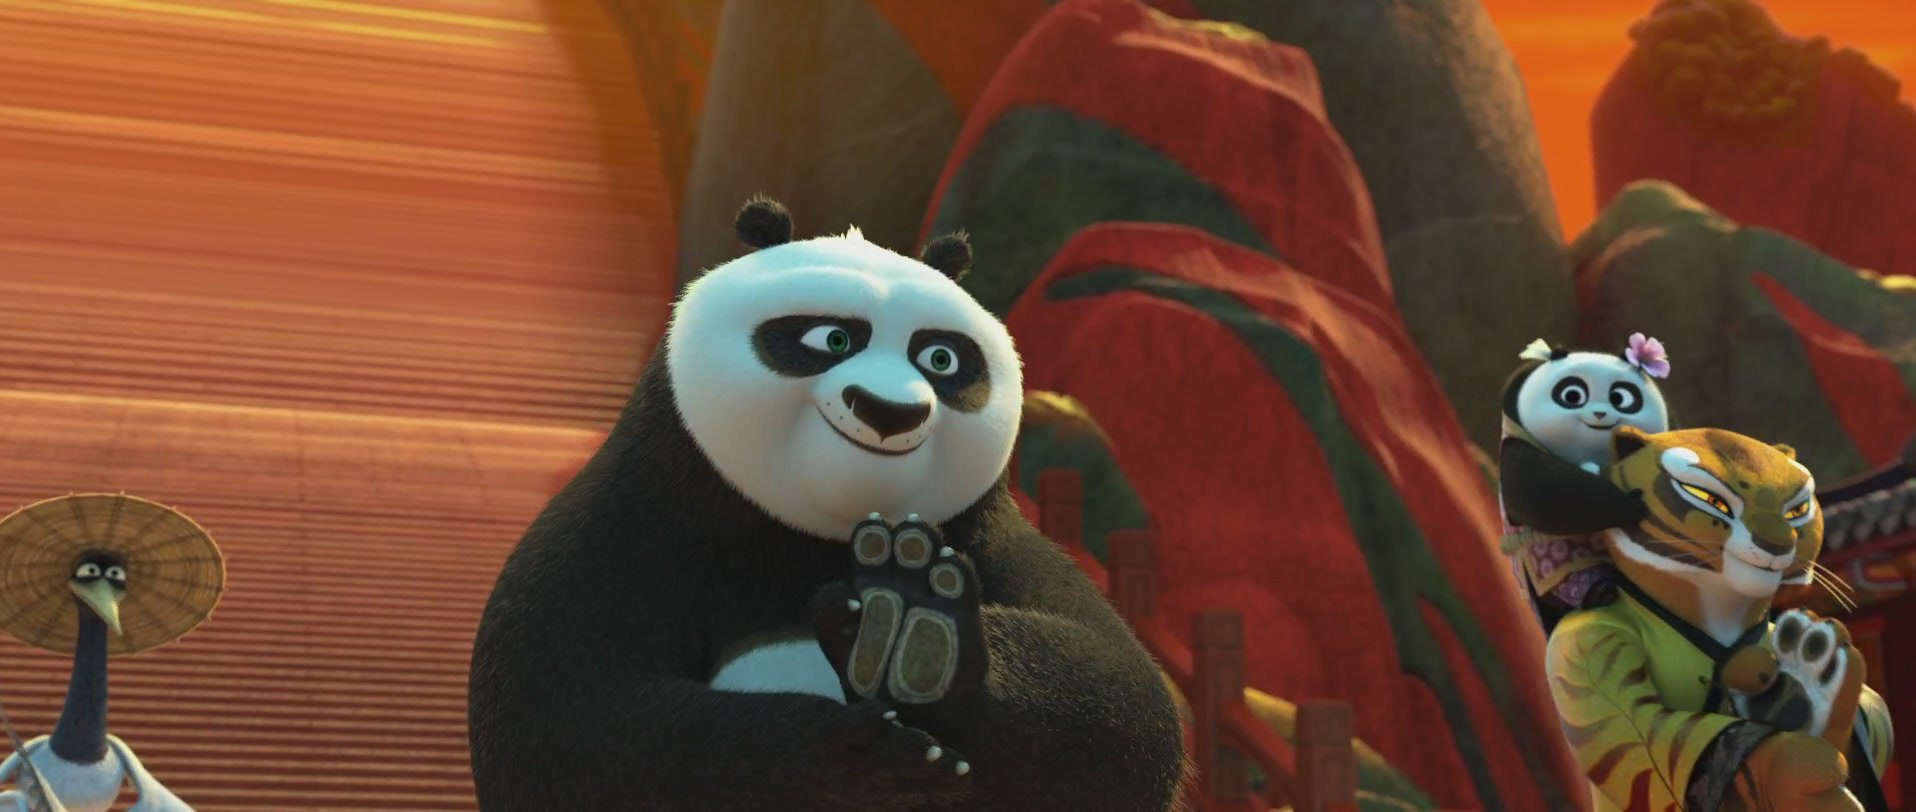 Kung fu panda pictures free download BC Big Bud - Kind Green Buds